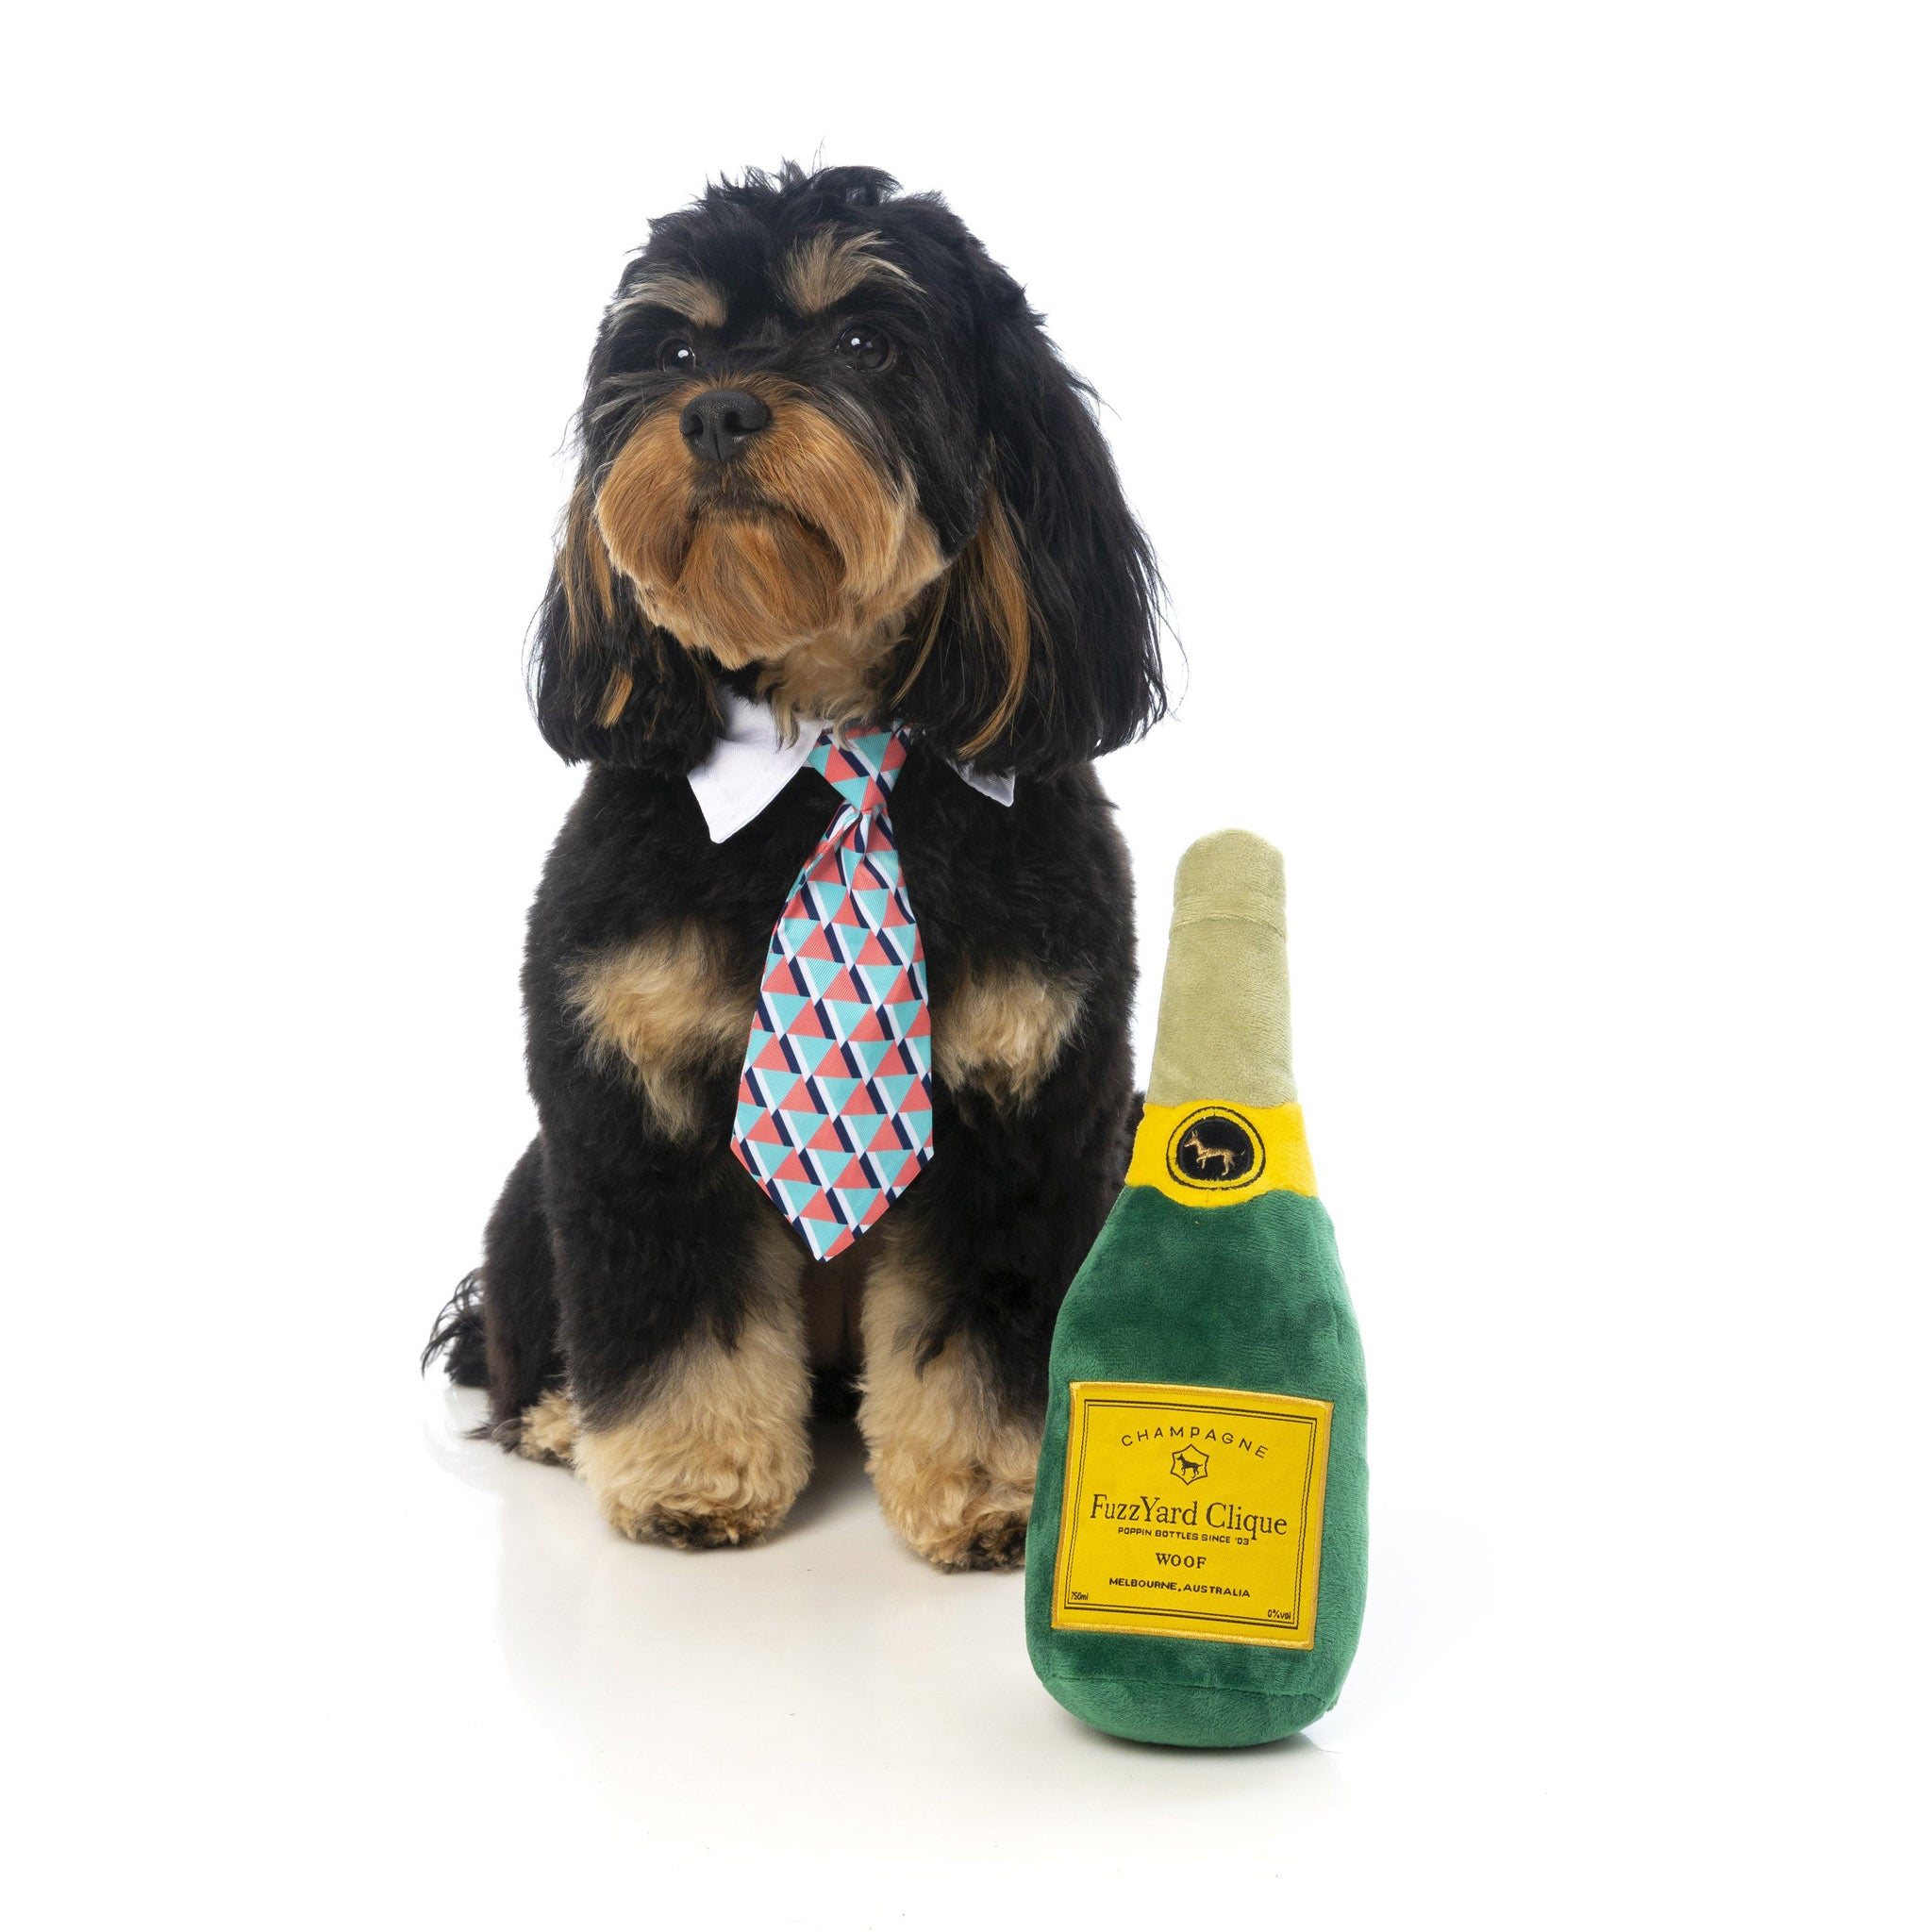 'Champagne Bottle' Plush Dog Toy - Five And Dime